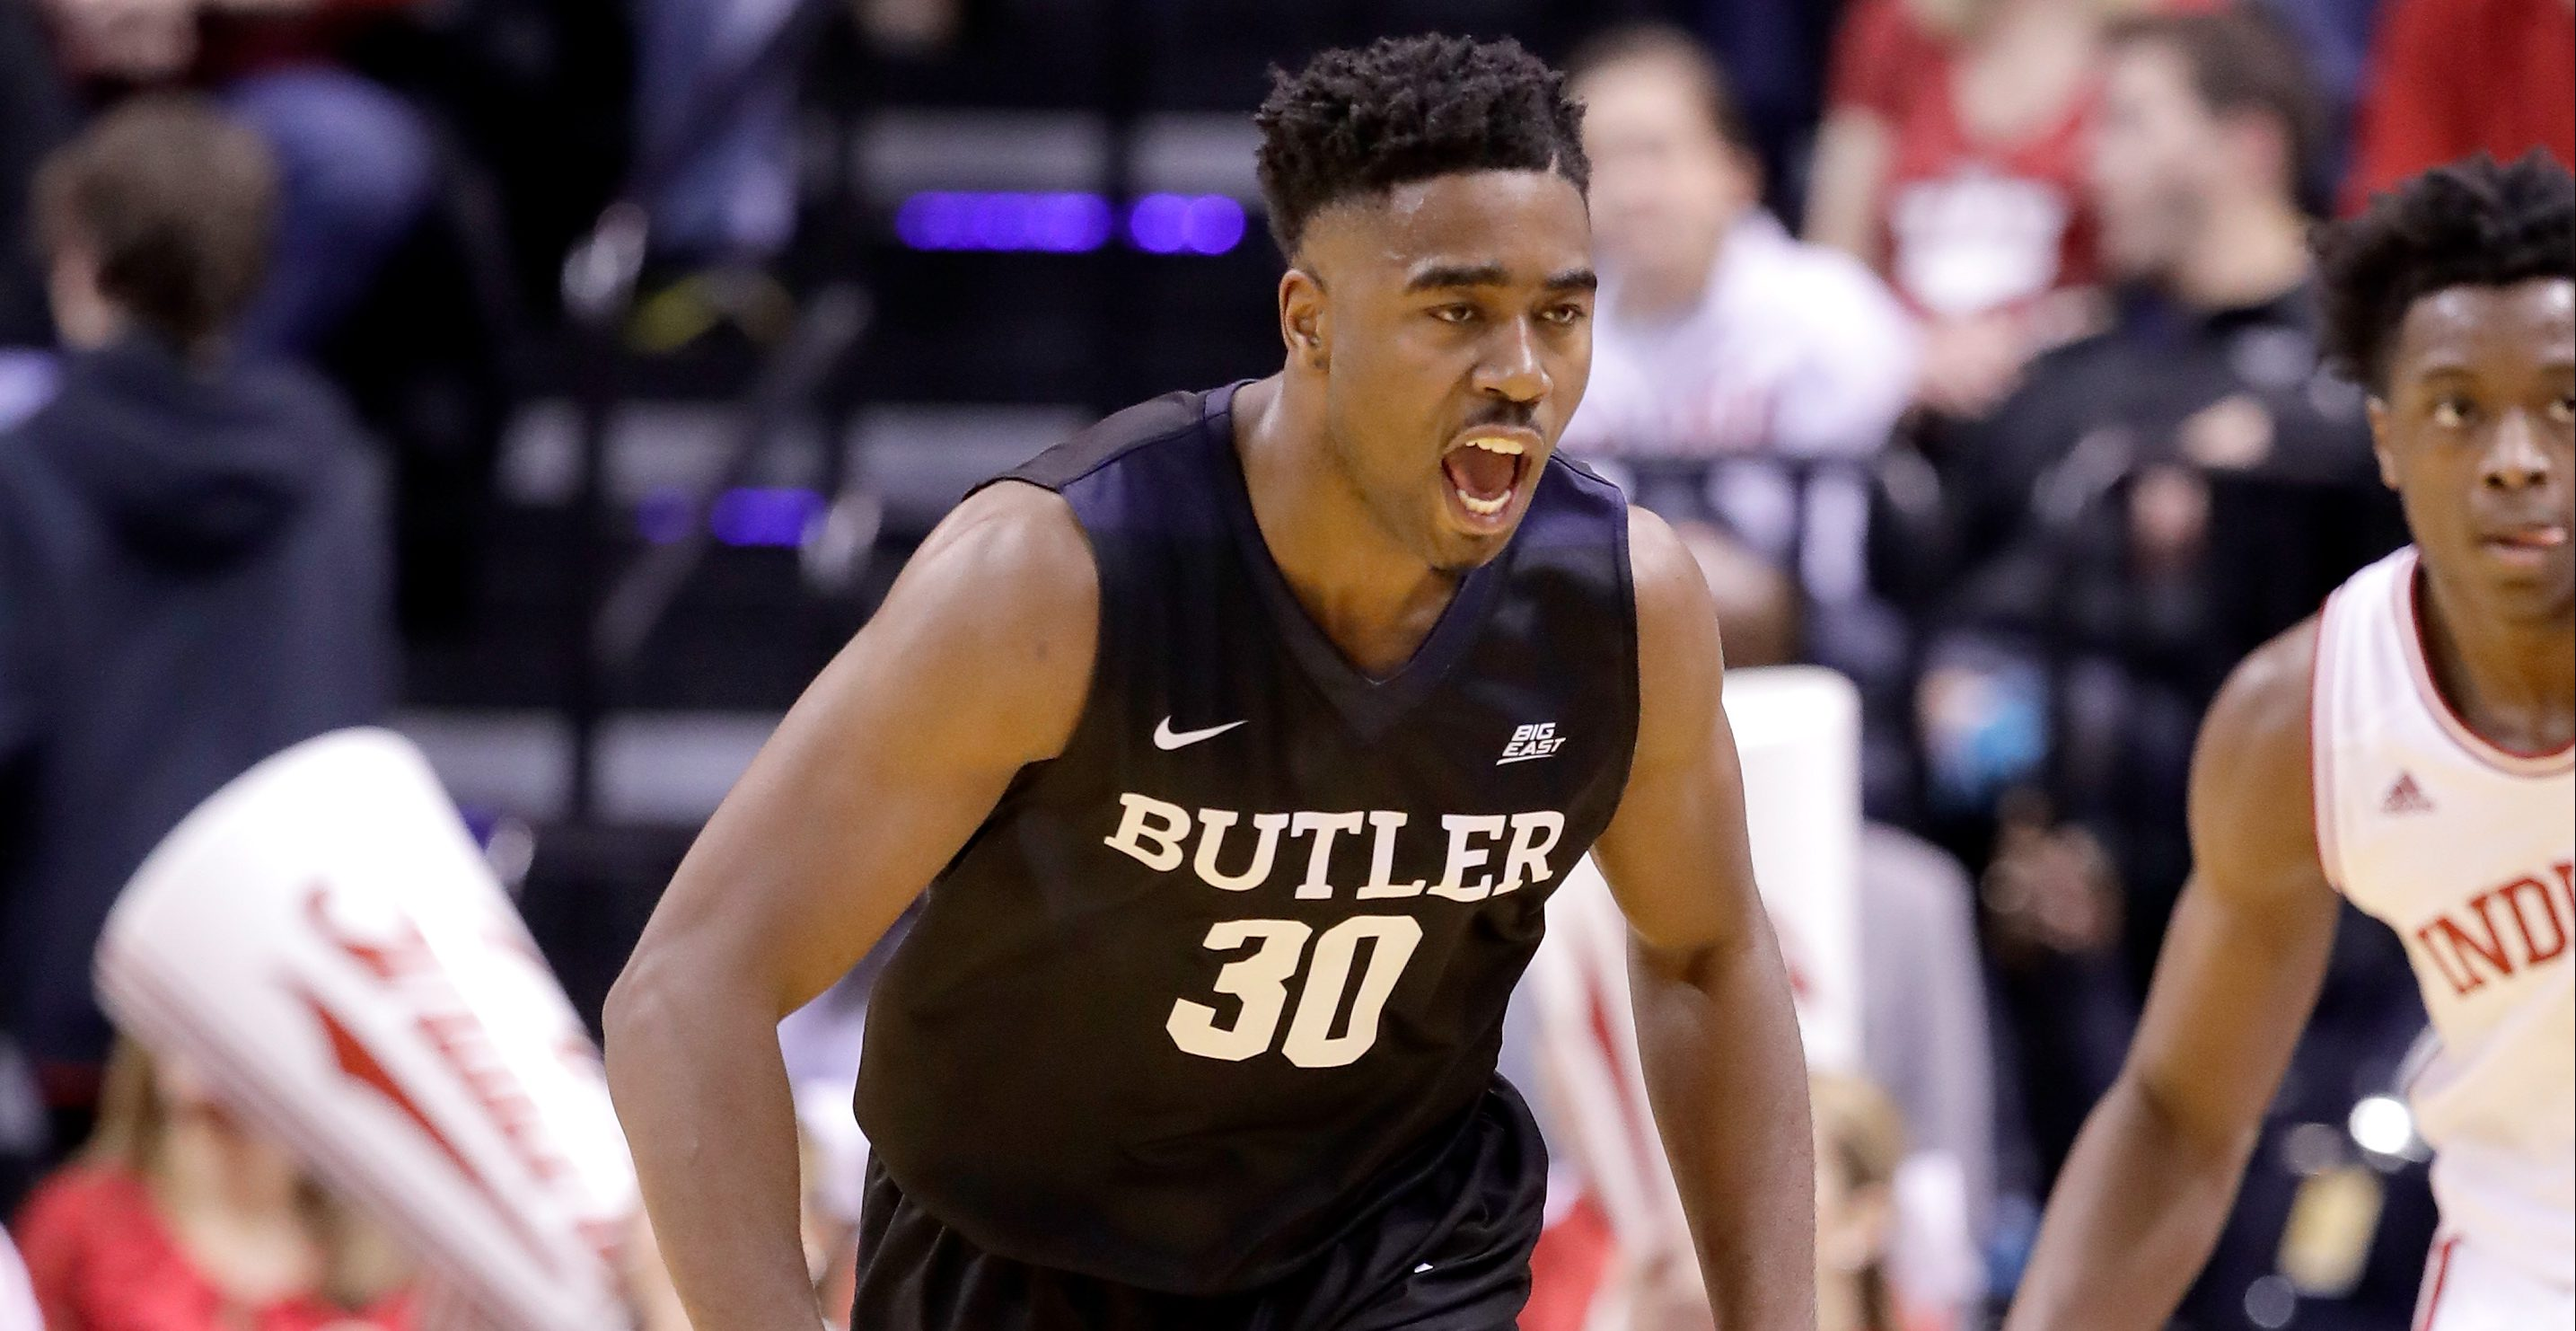 INDIANAPOLIS, IN - DECEMBER 17:   Kelan Martin #30 of the Butler Bulldogs celebrates during the 83-78 win over the Indiana Hoosiers during the Crossroads Classic at Bankers Life Fieldhouse on December 17, 2016 in Indianapolis, Indiana.  (Photo by Andy Lyons/Getty Images)